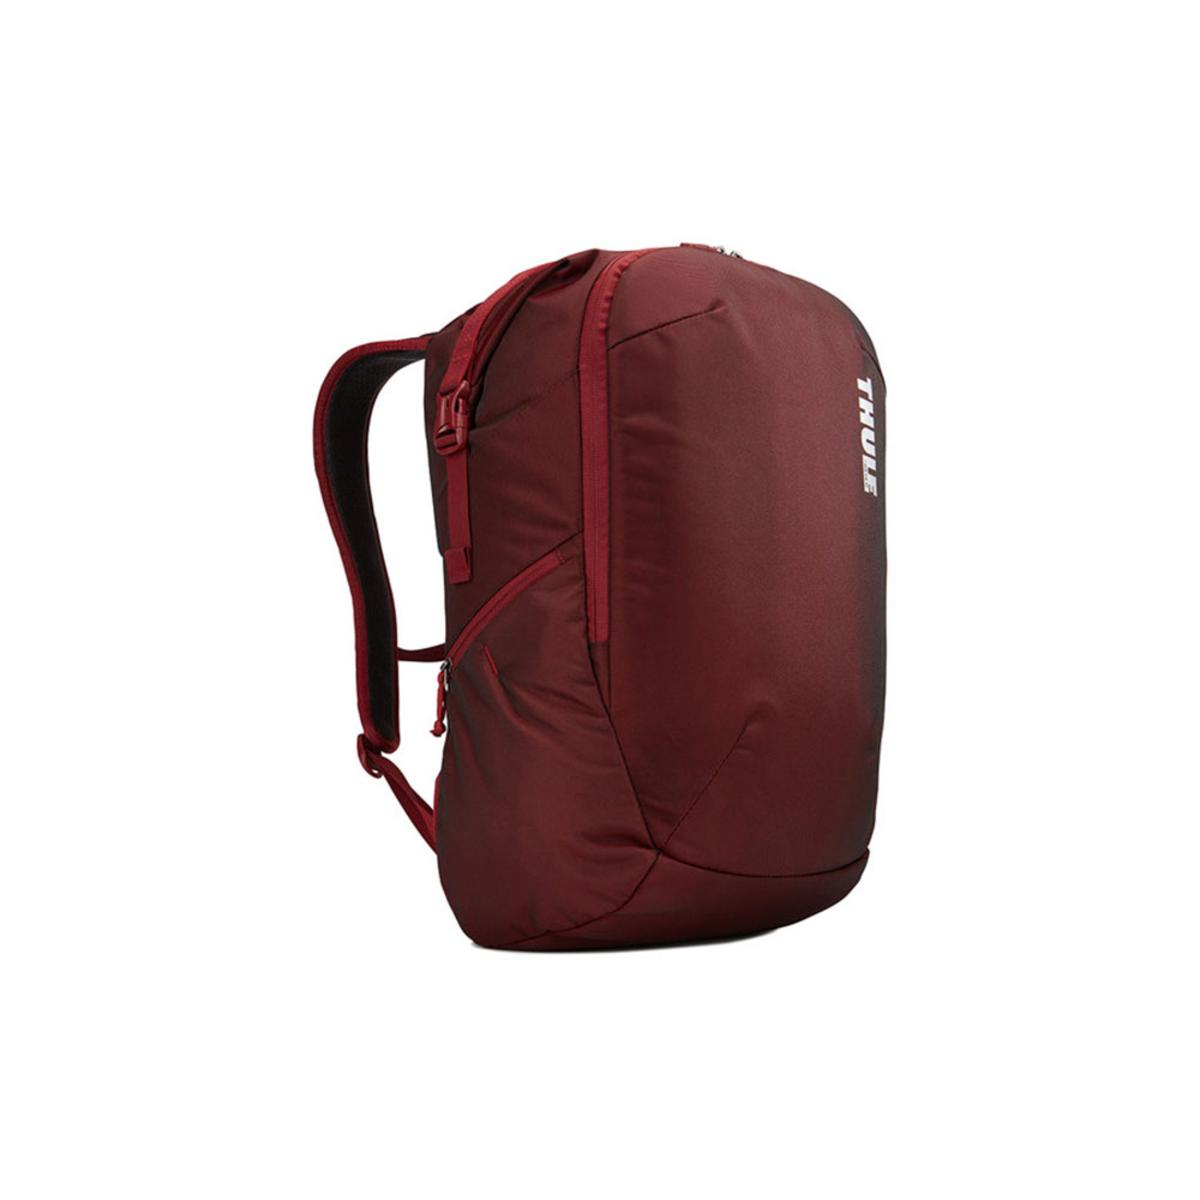 131c20cdd93 Thule Subterra Travel Backpack 34L - Ember - The Warming Store